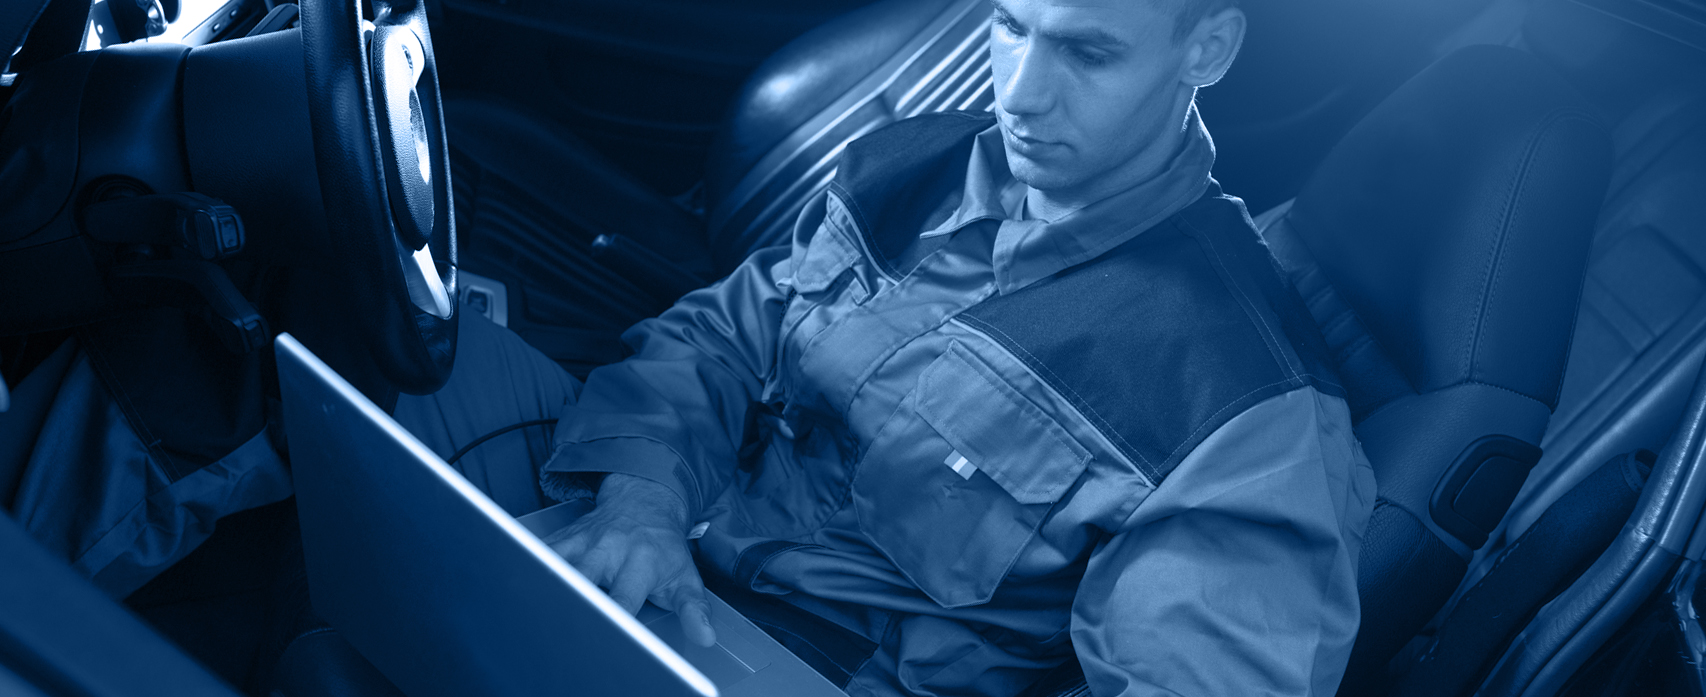 Mechanic checking a vehicle - Tuning & Remapping Dartford